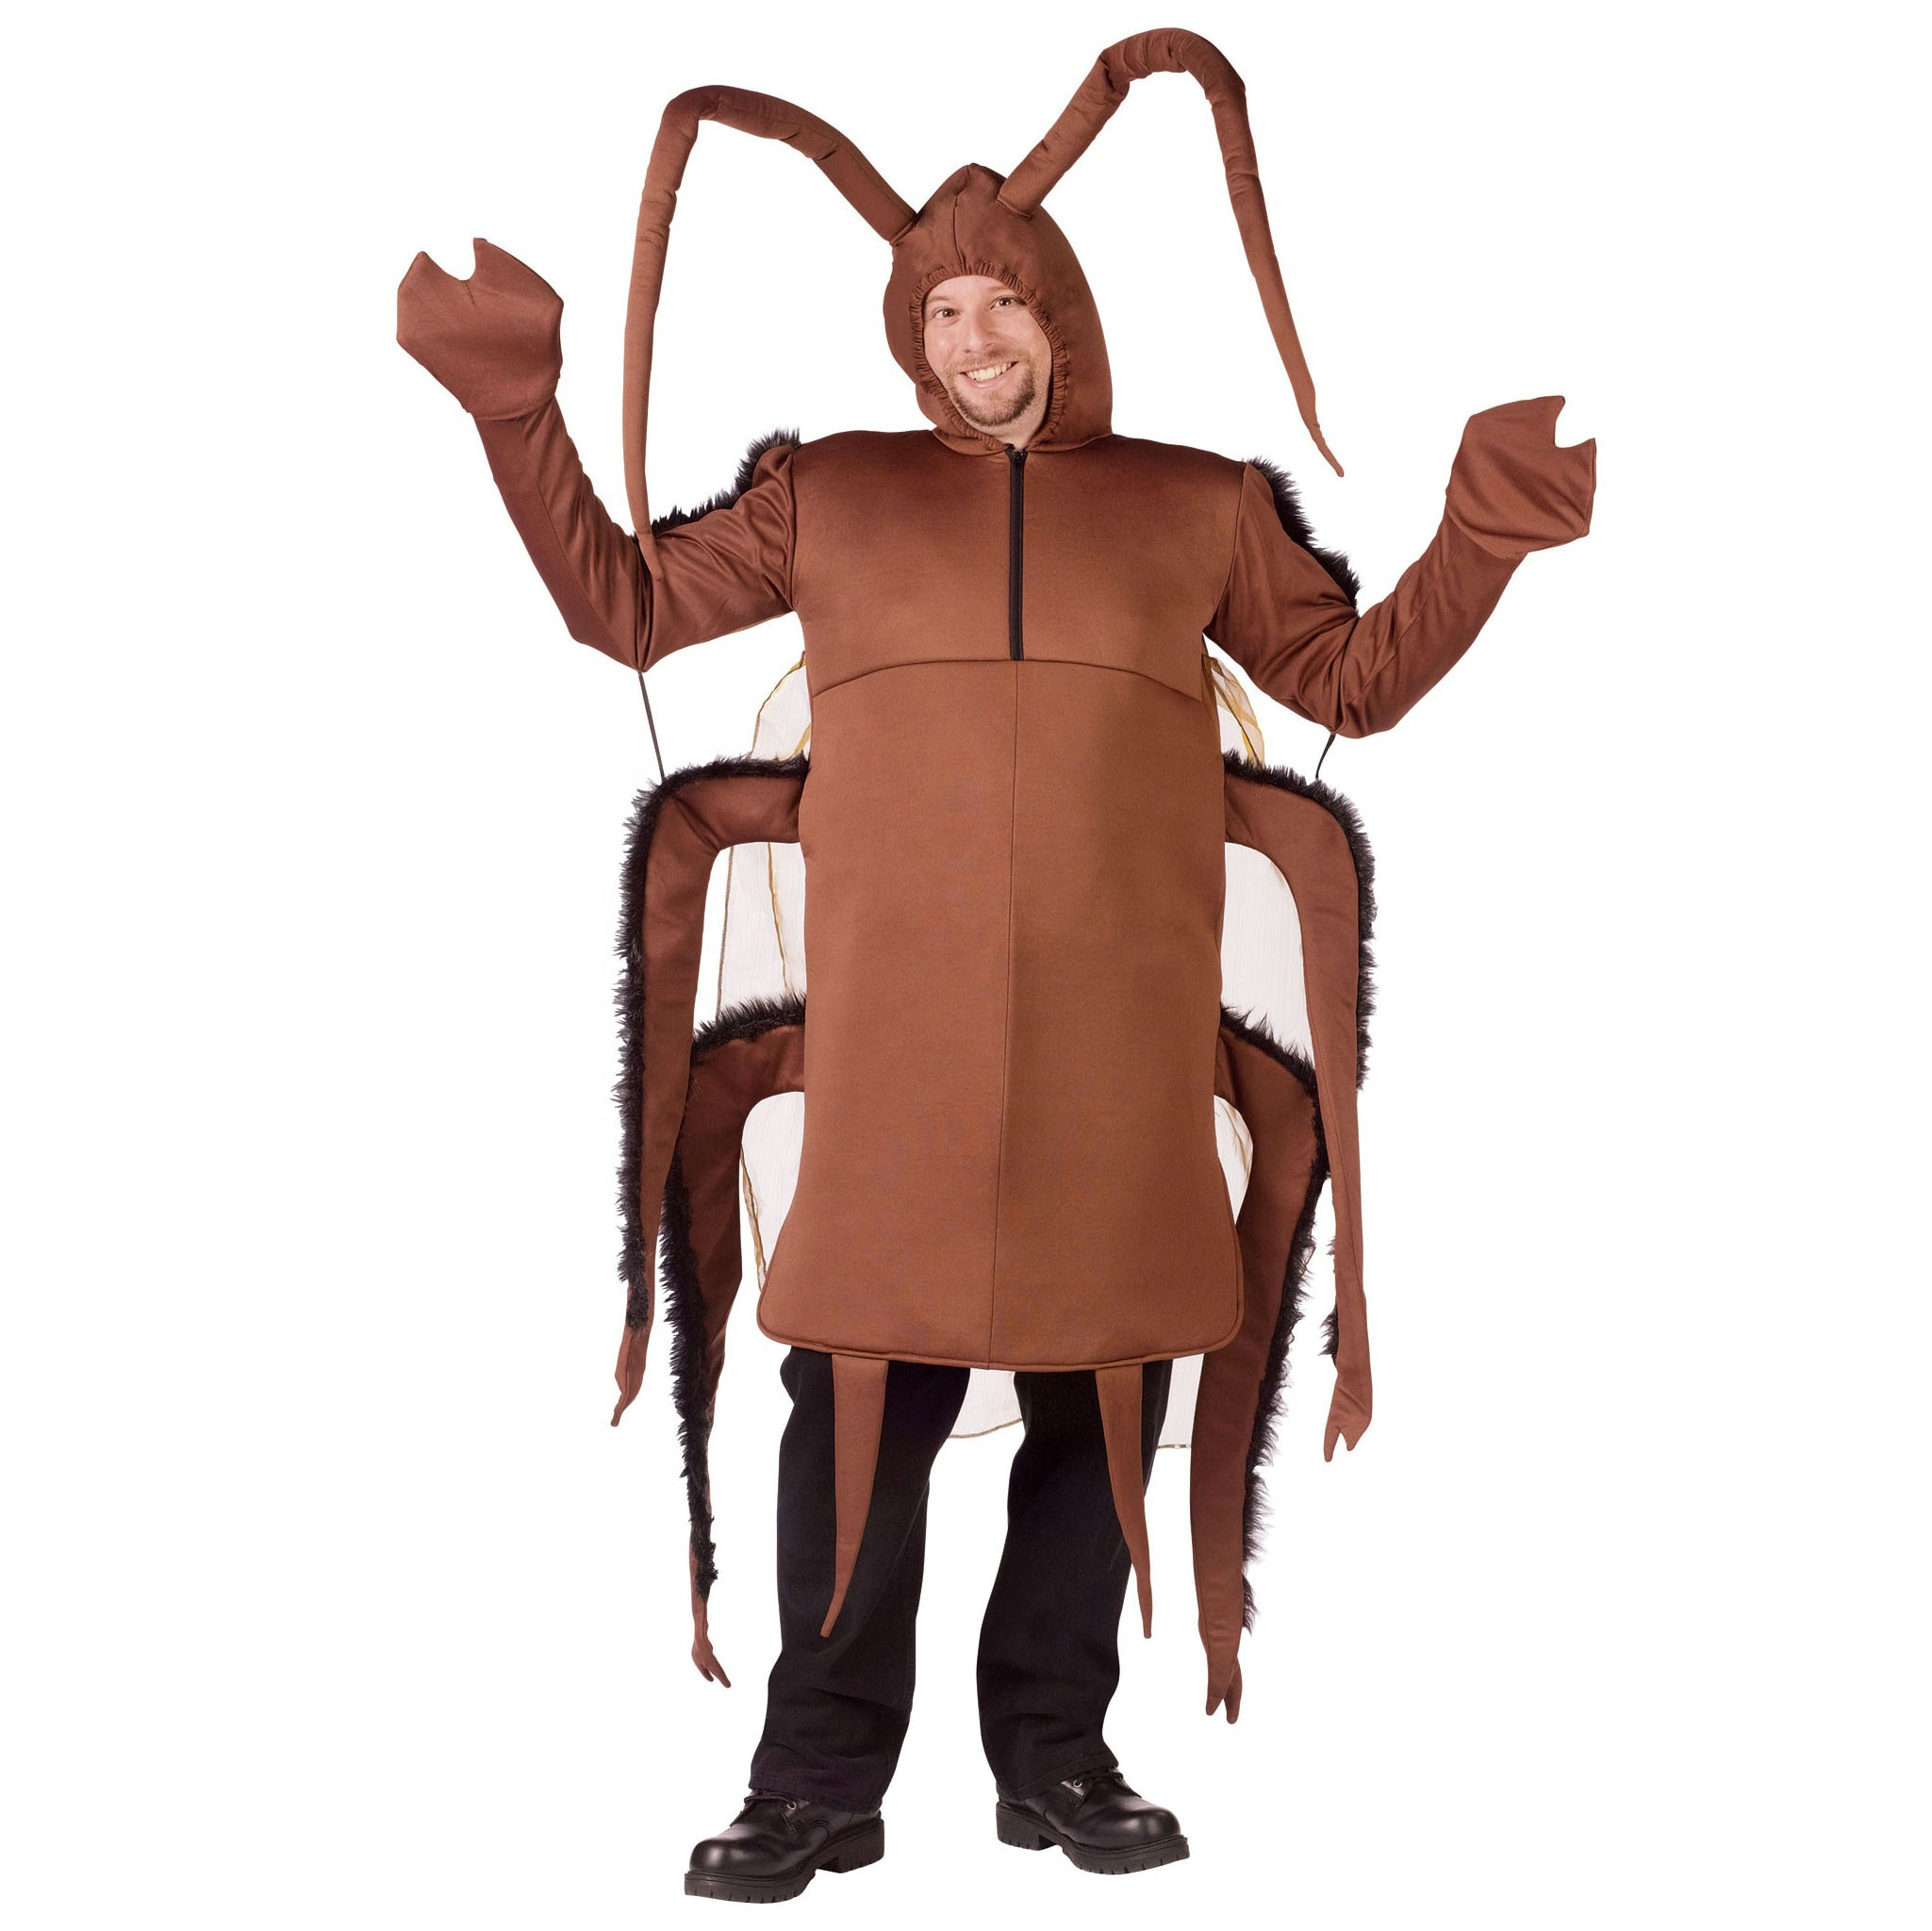 Adulto Scarafaggio Bug Insetto Animale Cosplay Costume per la Festa di Halloween